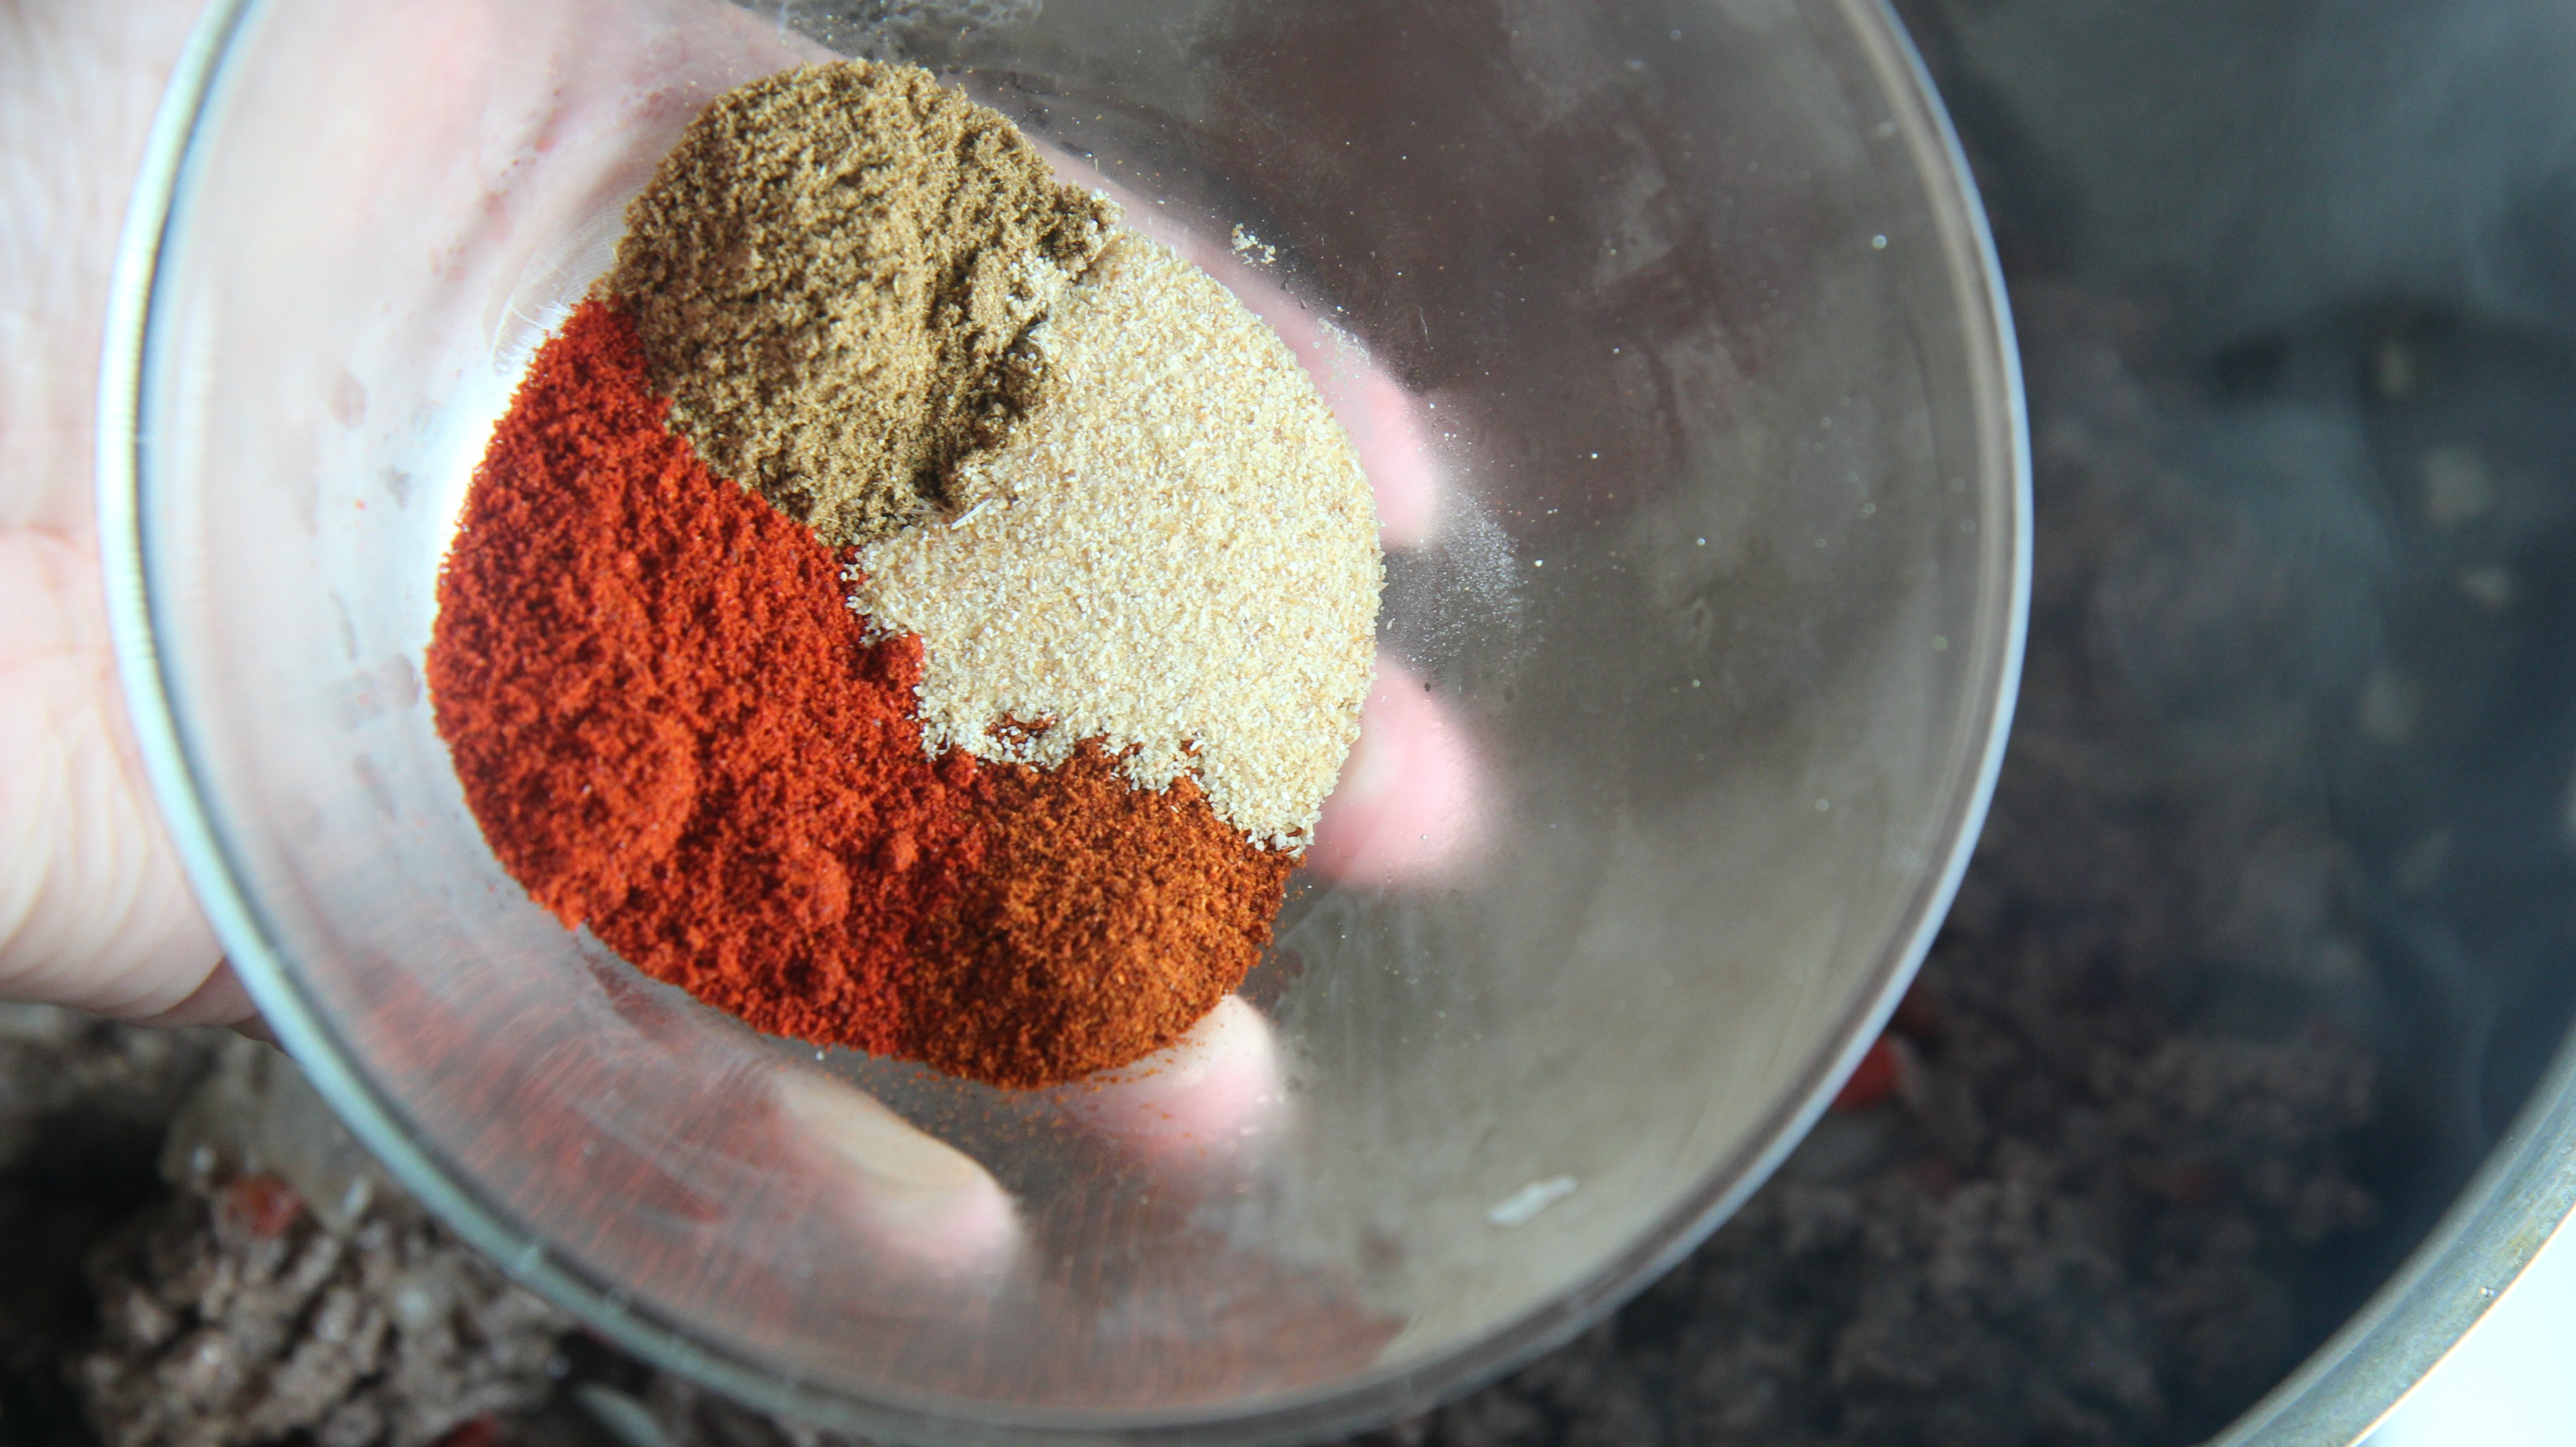 A delicious mix of spices like chili powder, garlic powder and cumin